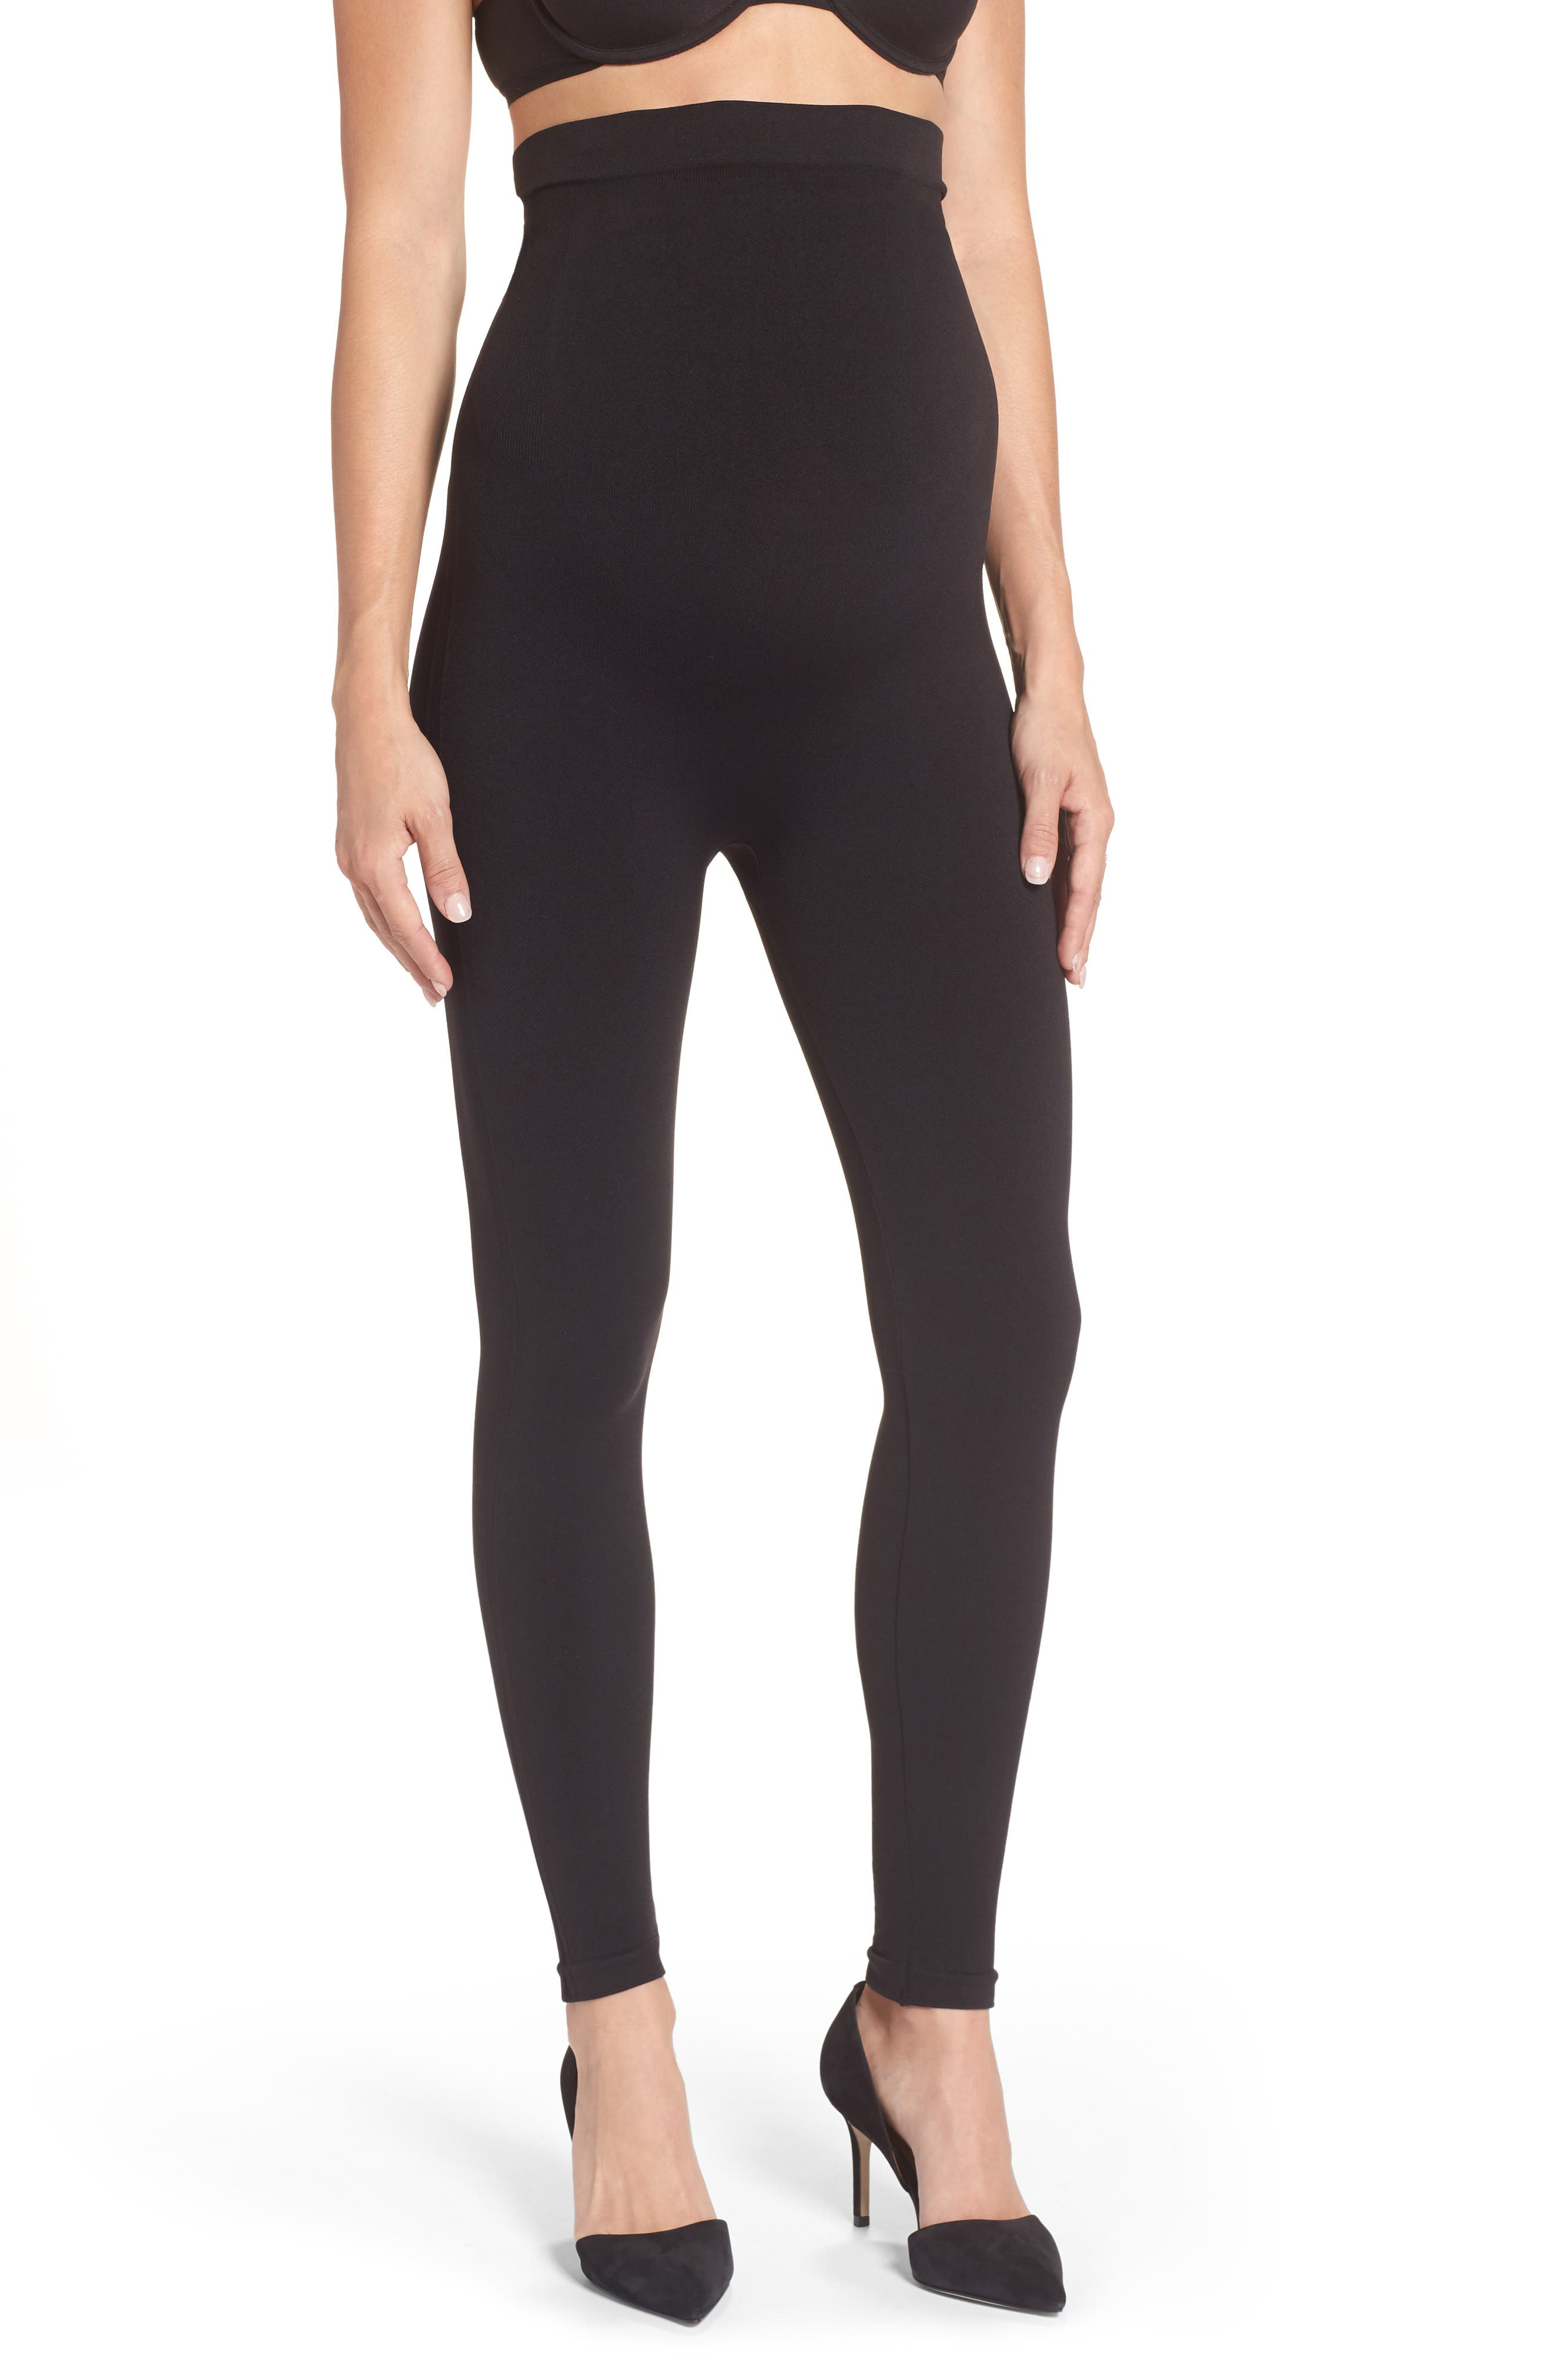 Mama Look at Me Now Seamless Maternity Leggings,                             Main thumbnail 1, color,                             Very Black